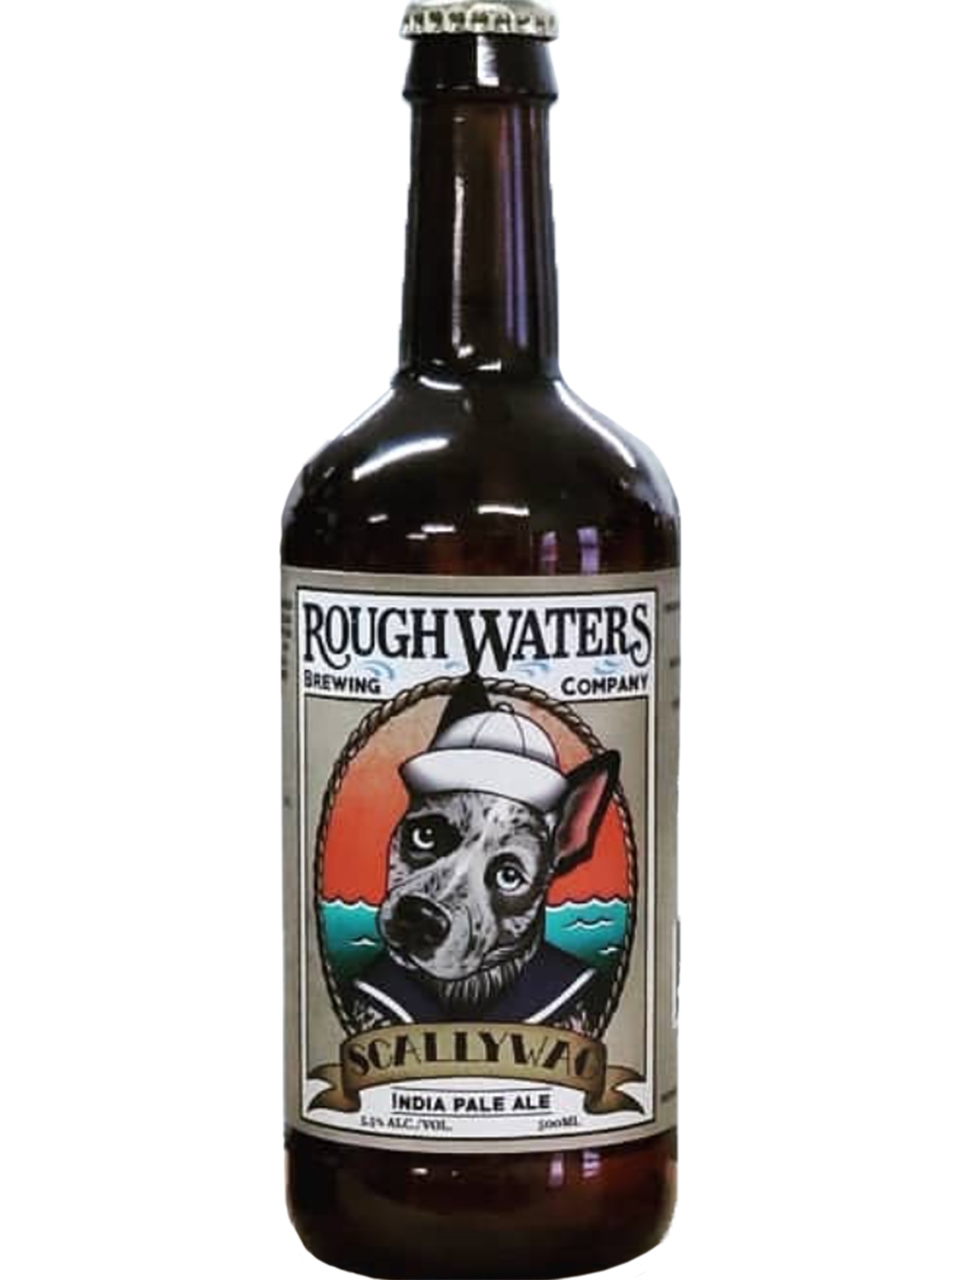 Rough Waters Scallyway 500ml Bottle